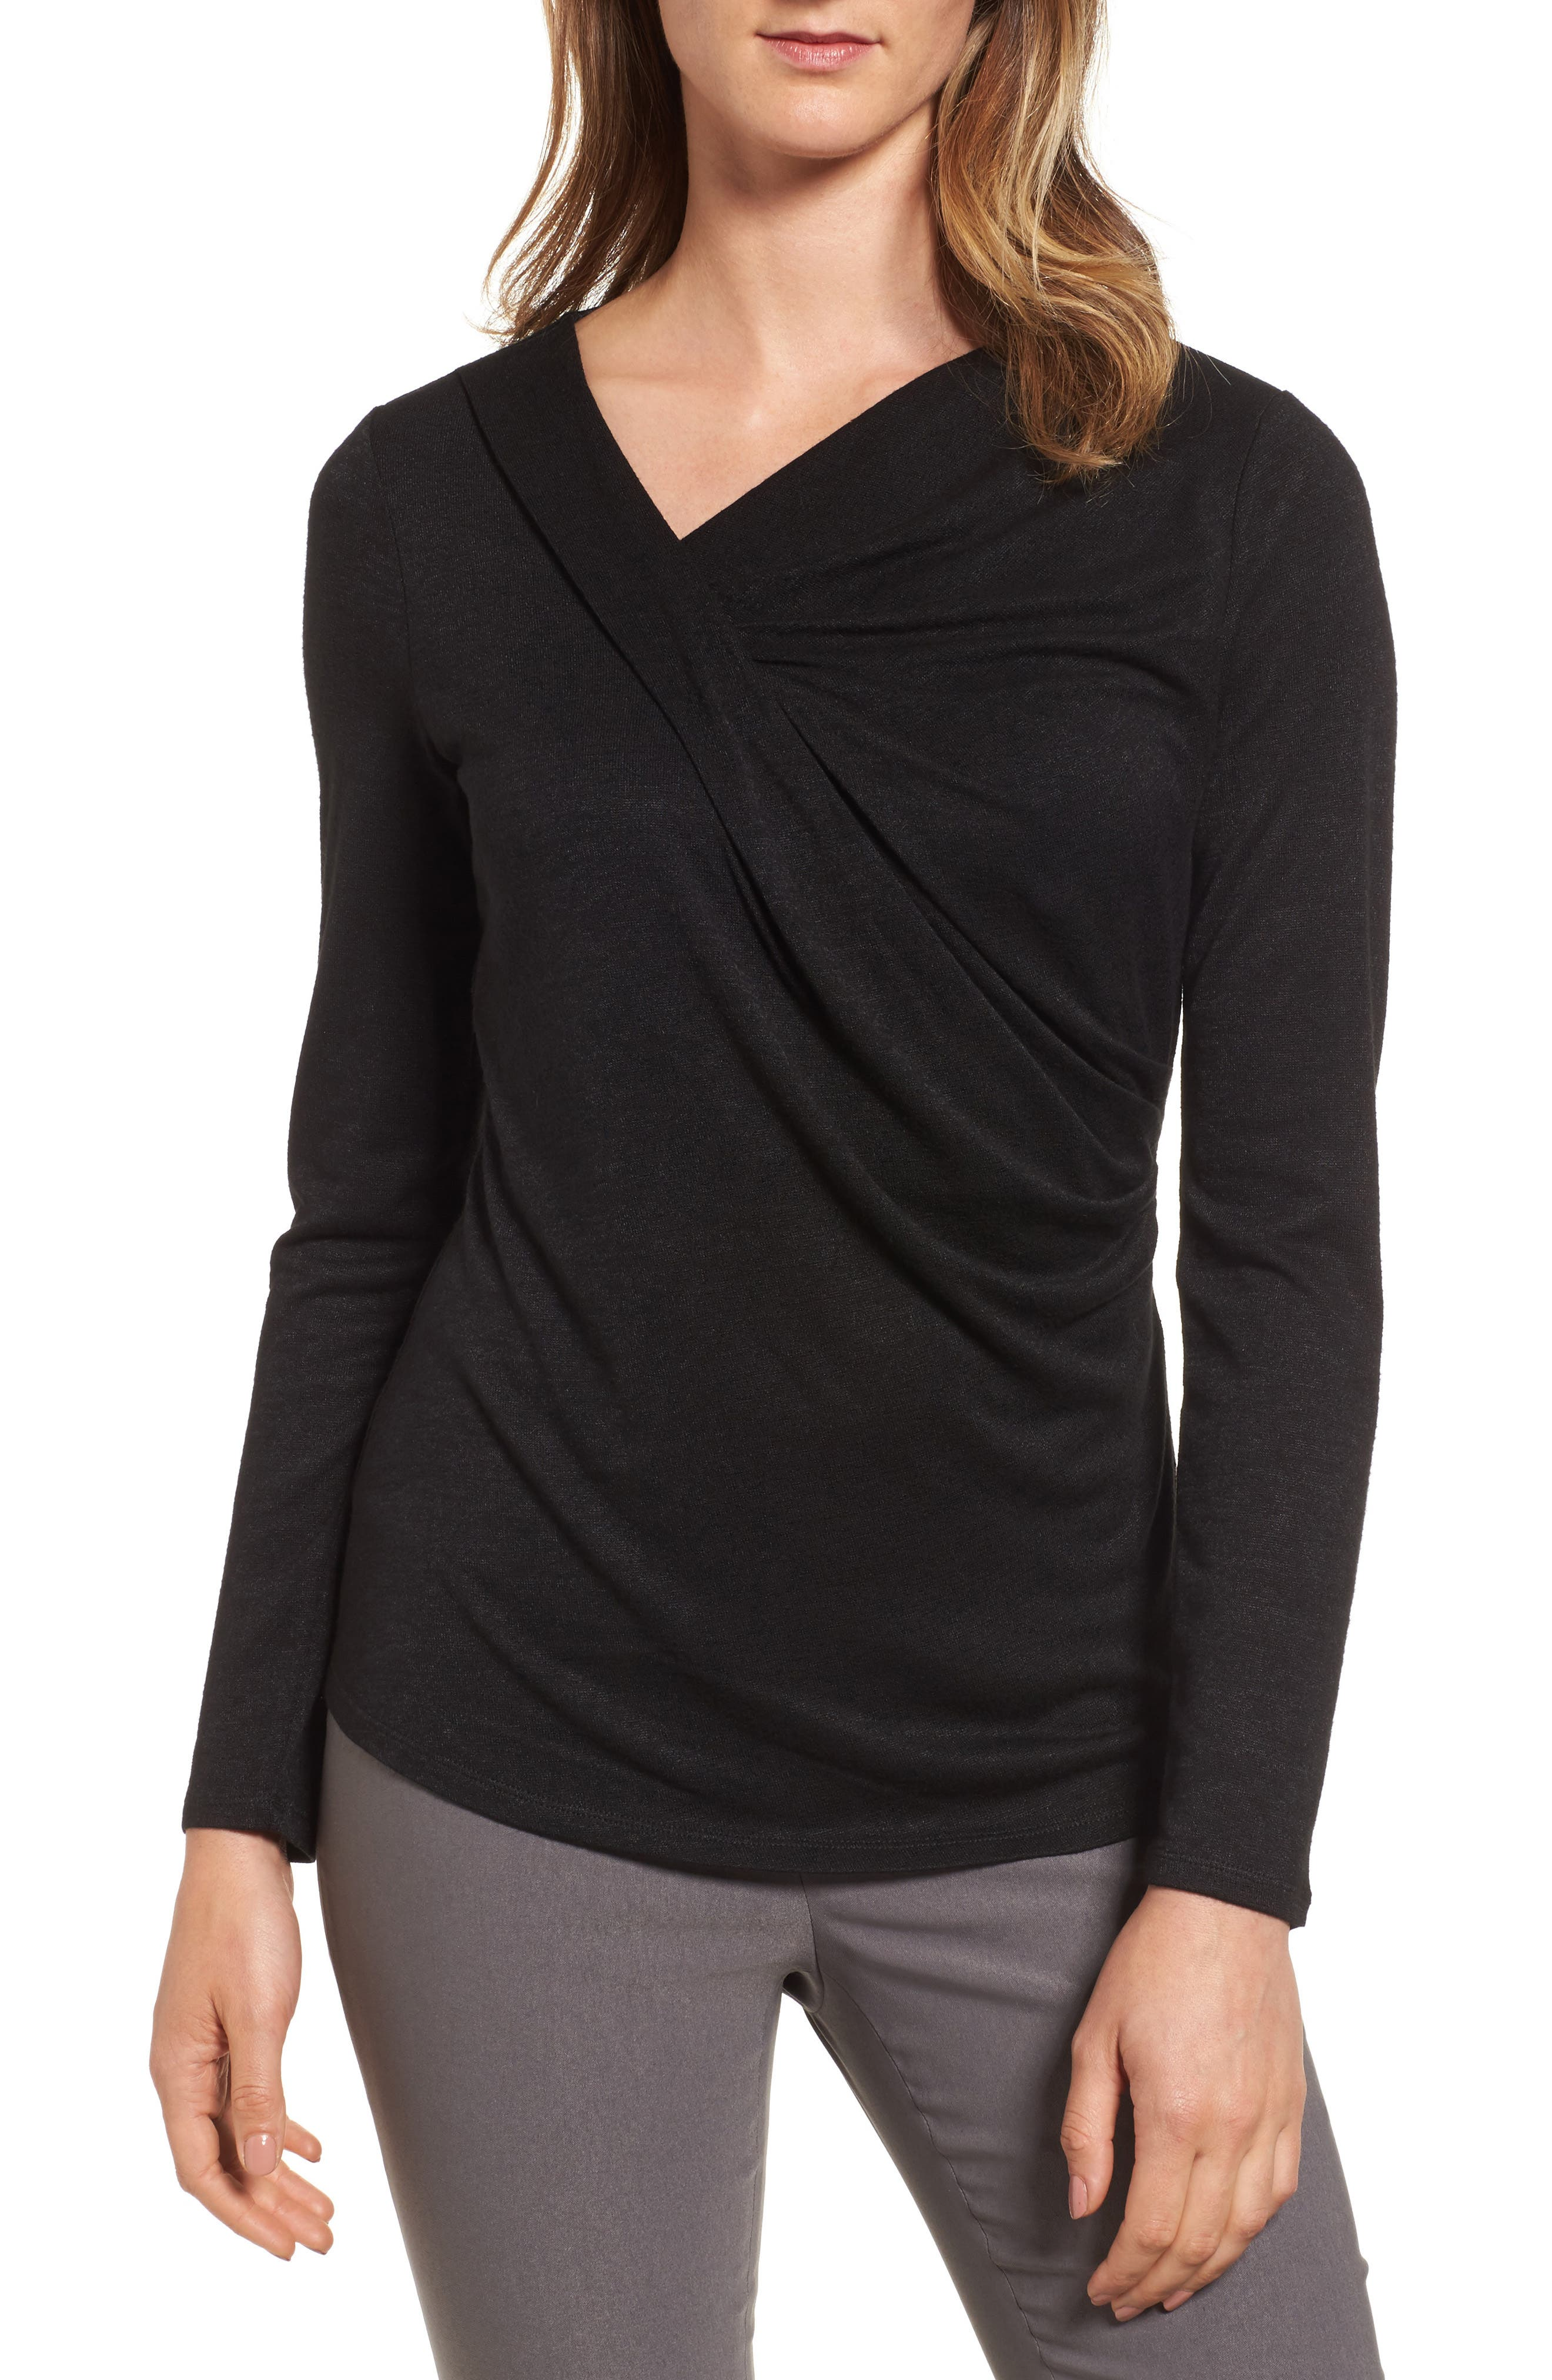 Every Occasion Drape Top,                             Main thumbnail 1, color,                             004